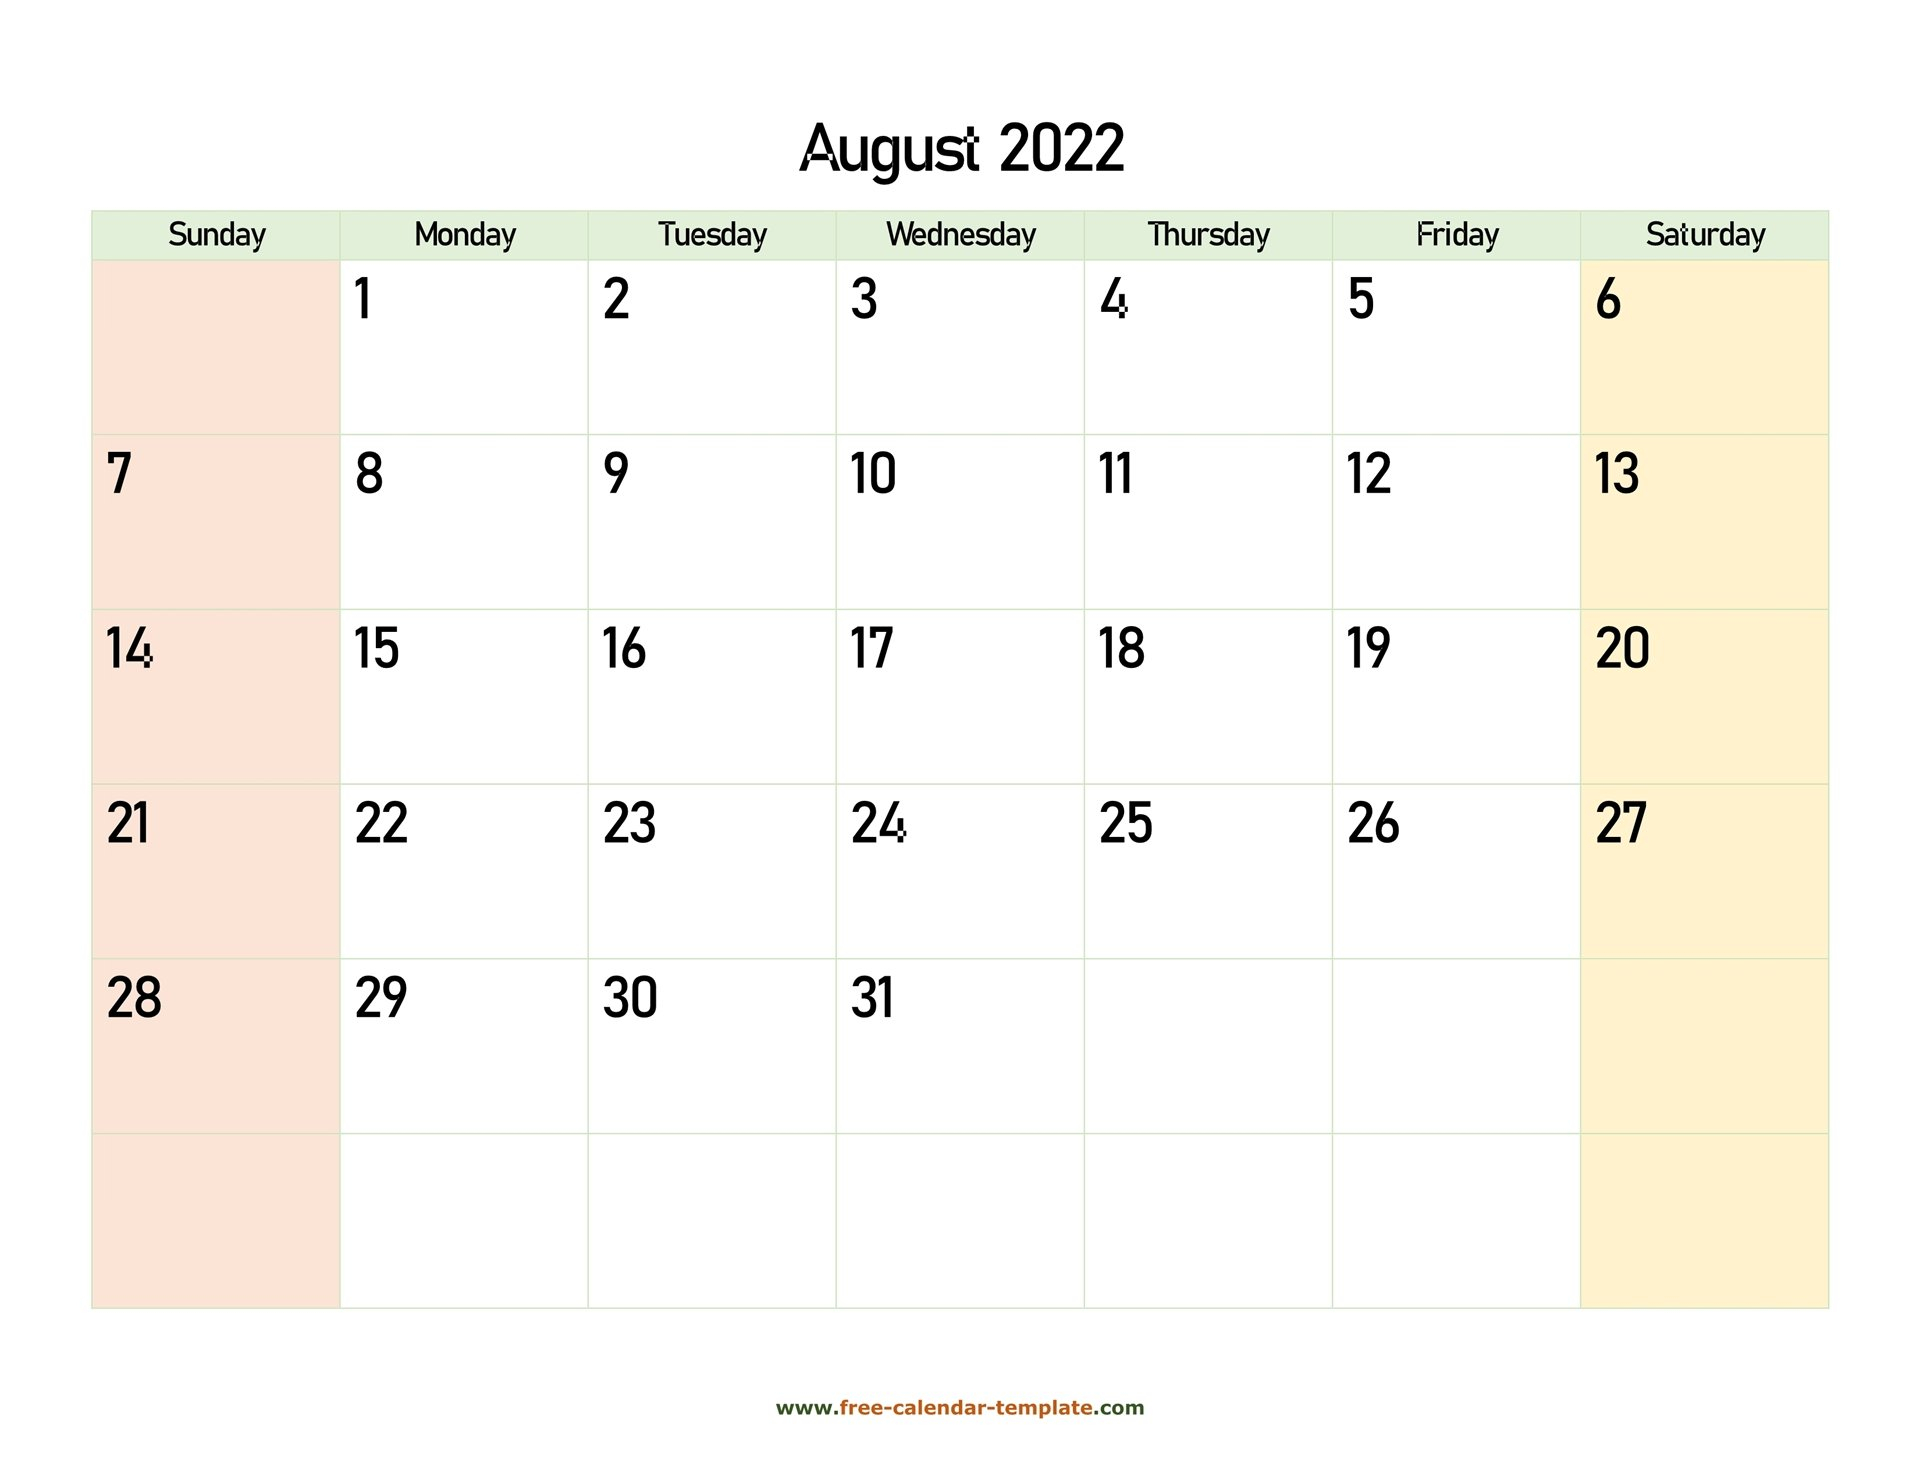 August 2022 Calendar Printable With Coloring On Weekend intended for Printable 2022 August Calendar Photo